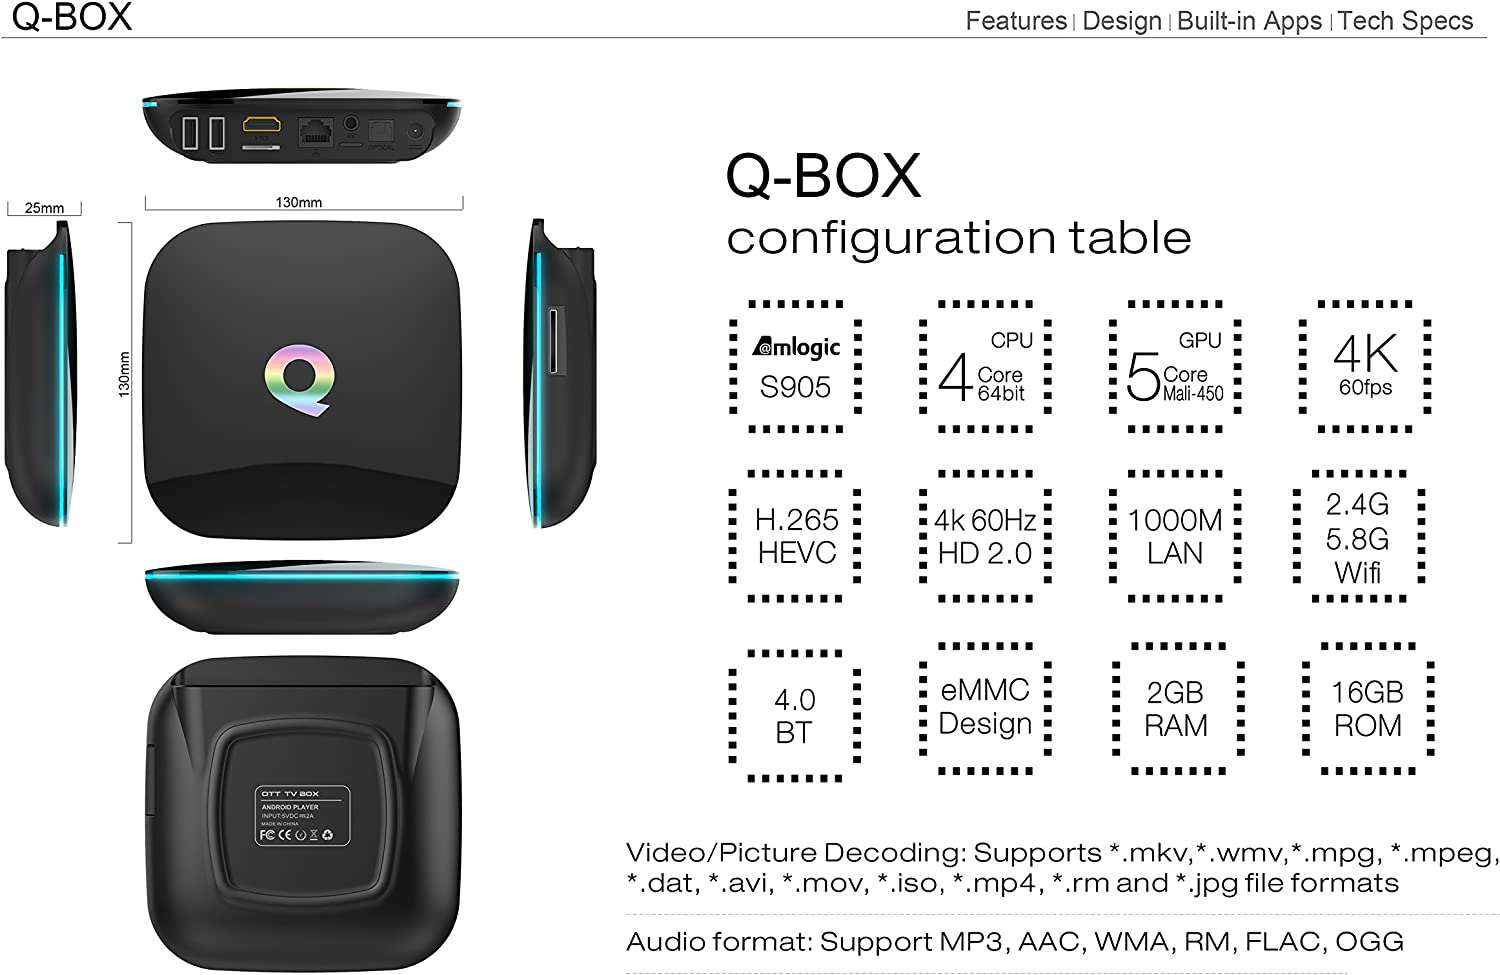 Smart Android TV Box, QBox 2017 modelo Android 6.0 TV Box Amlogic amlogics905 X 2 GB de RAM 16 GB ROM Smart TV Caja con procesador Quad Core A53 64 bits, HDMI